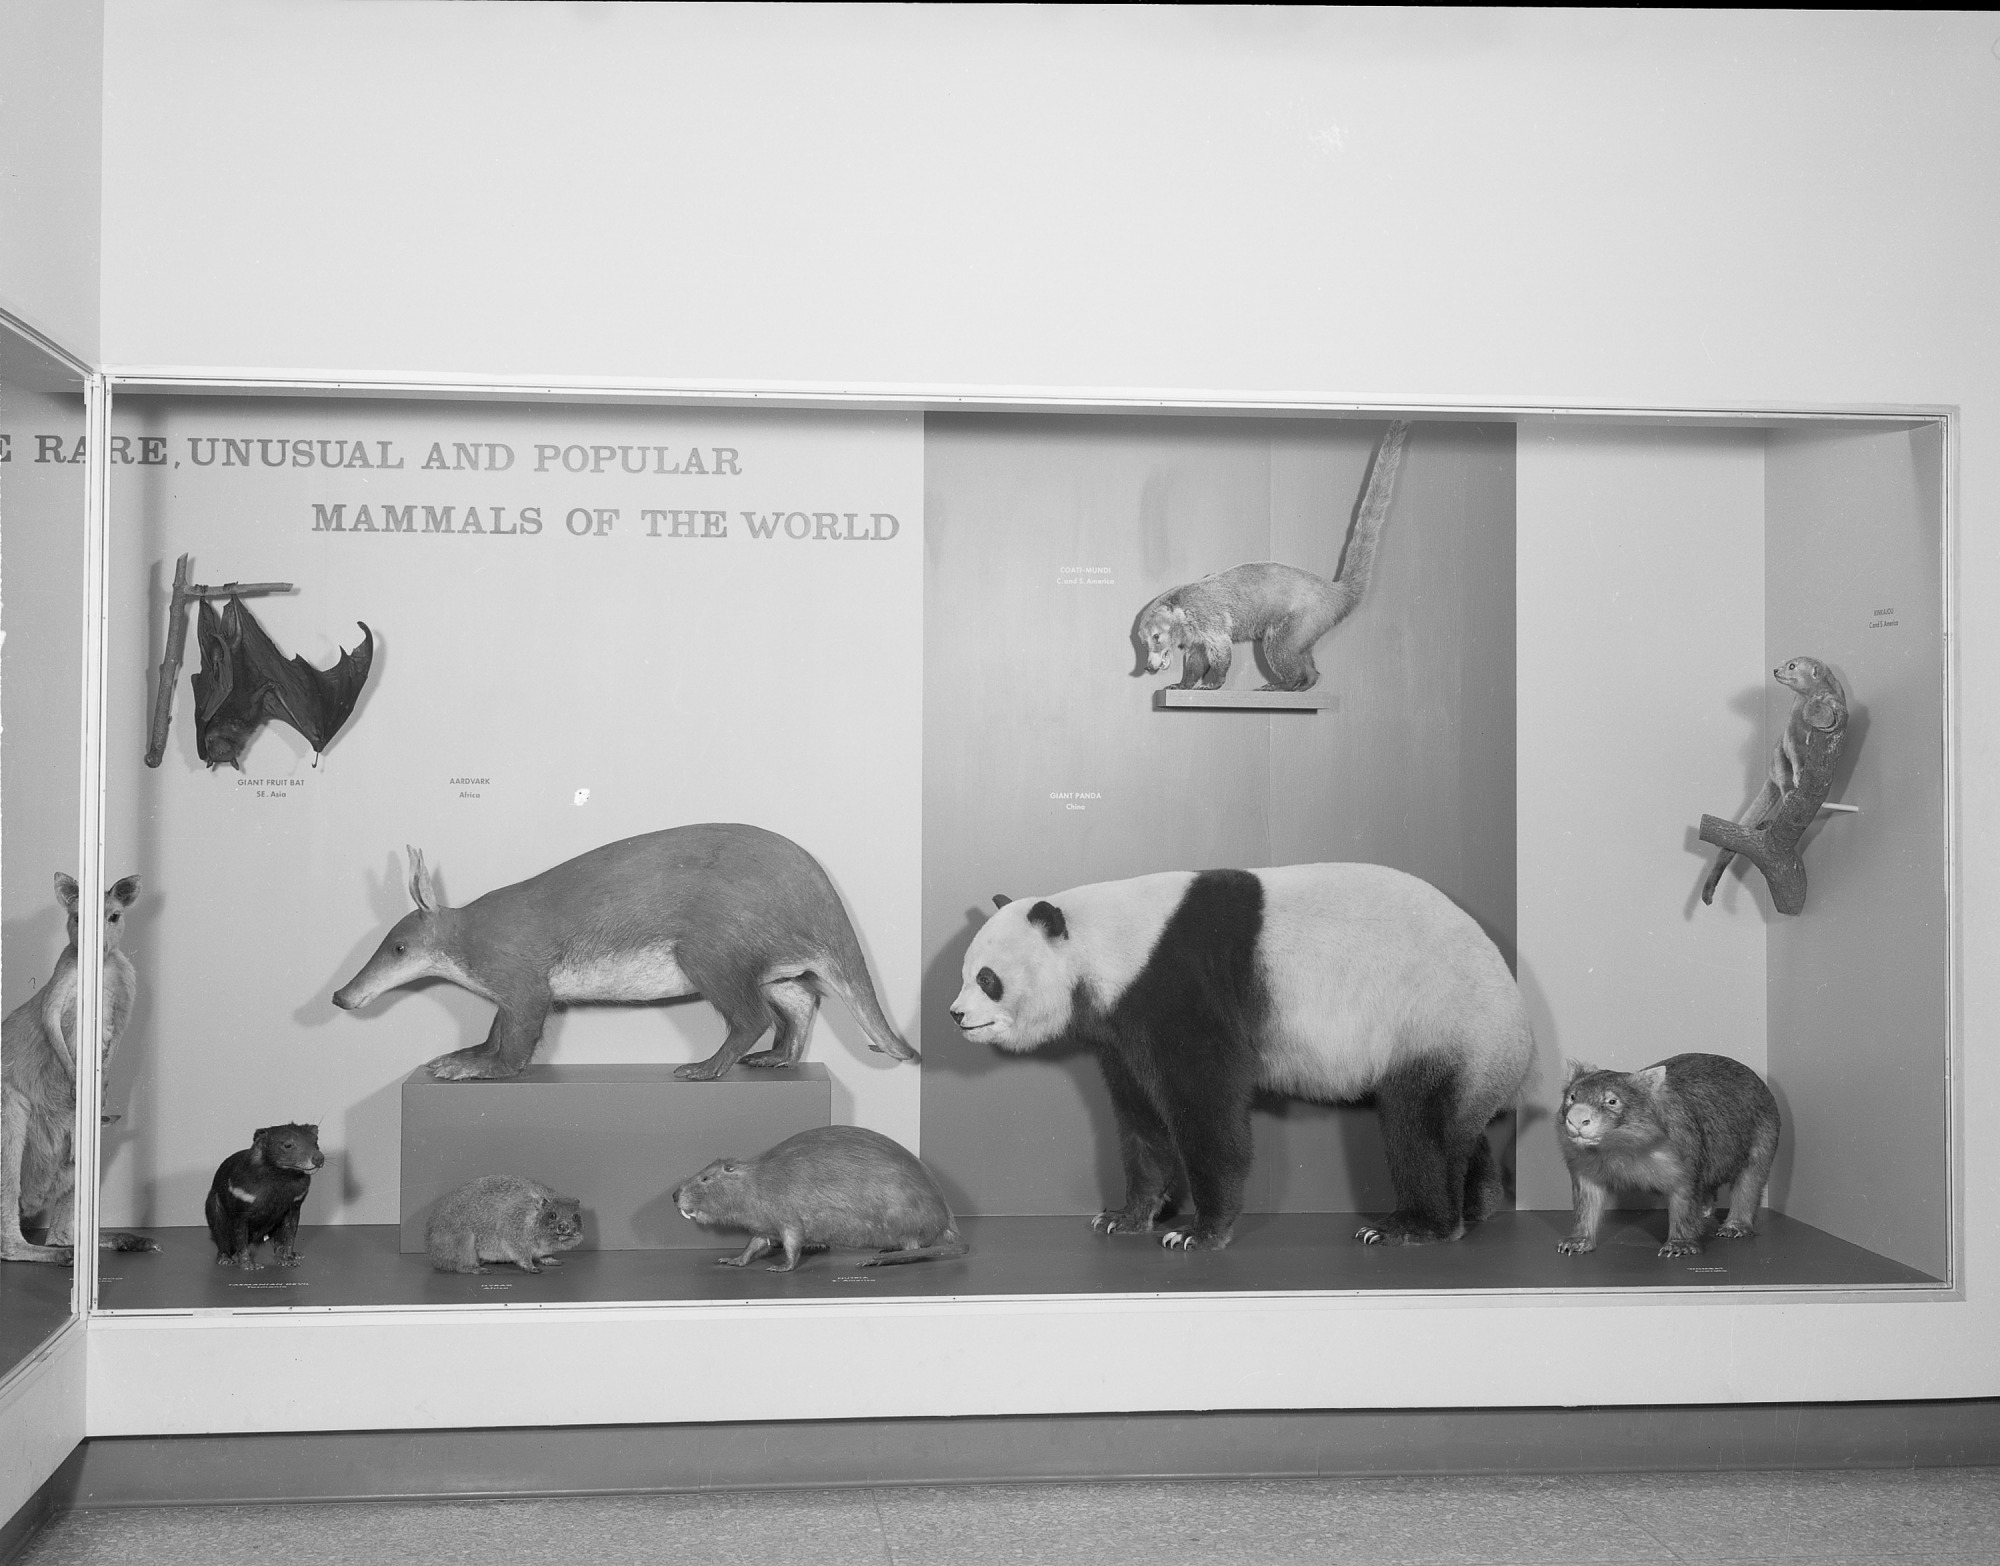 Rare, Unusual and Popular Mammals of the World, Exhibit